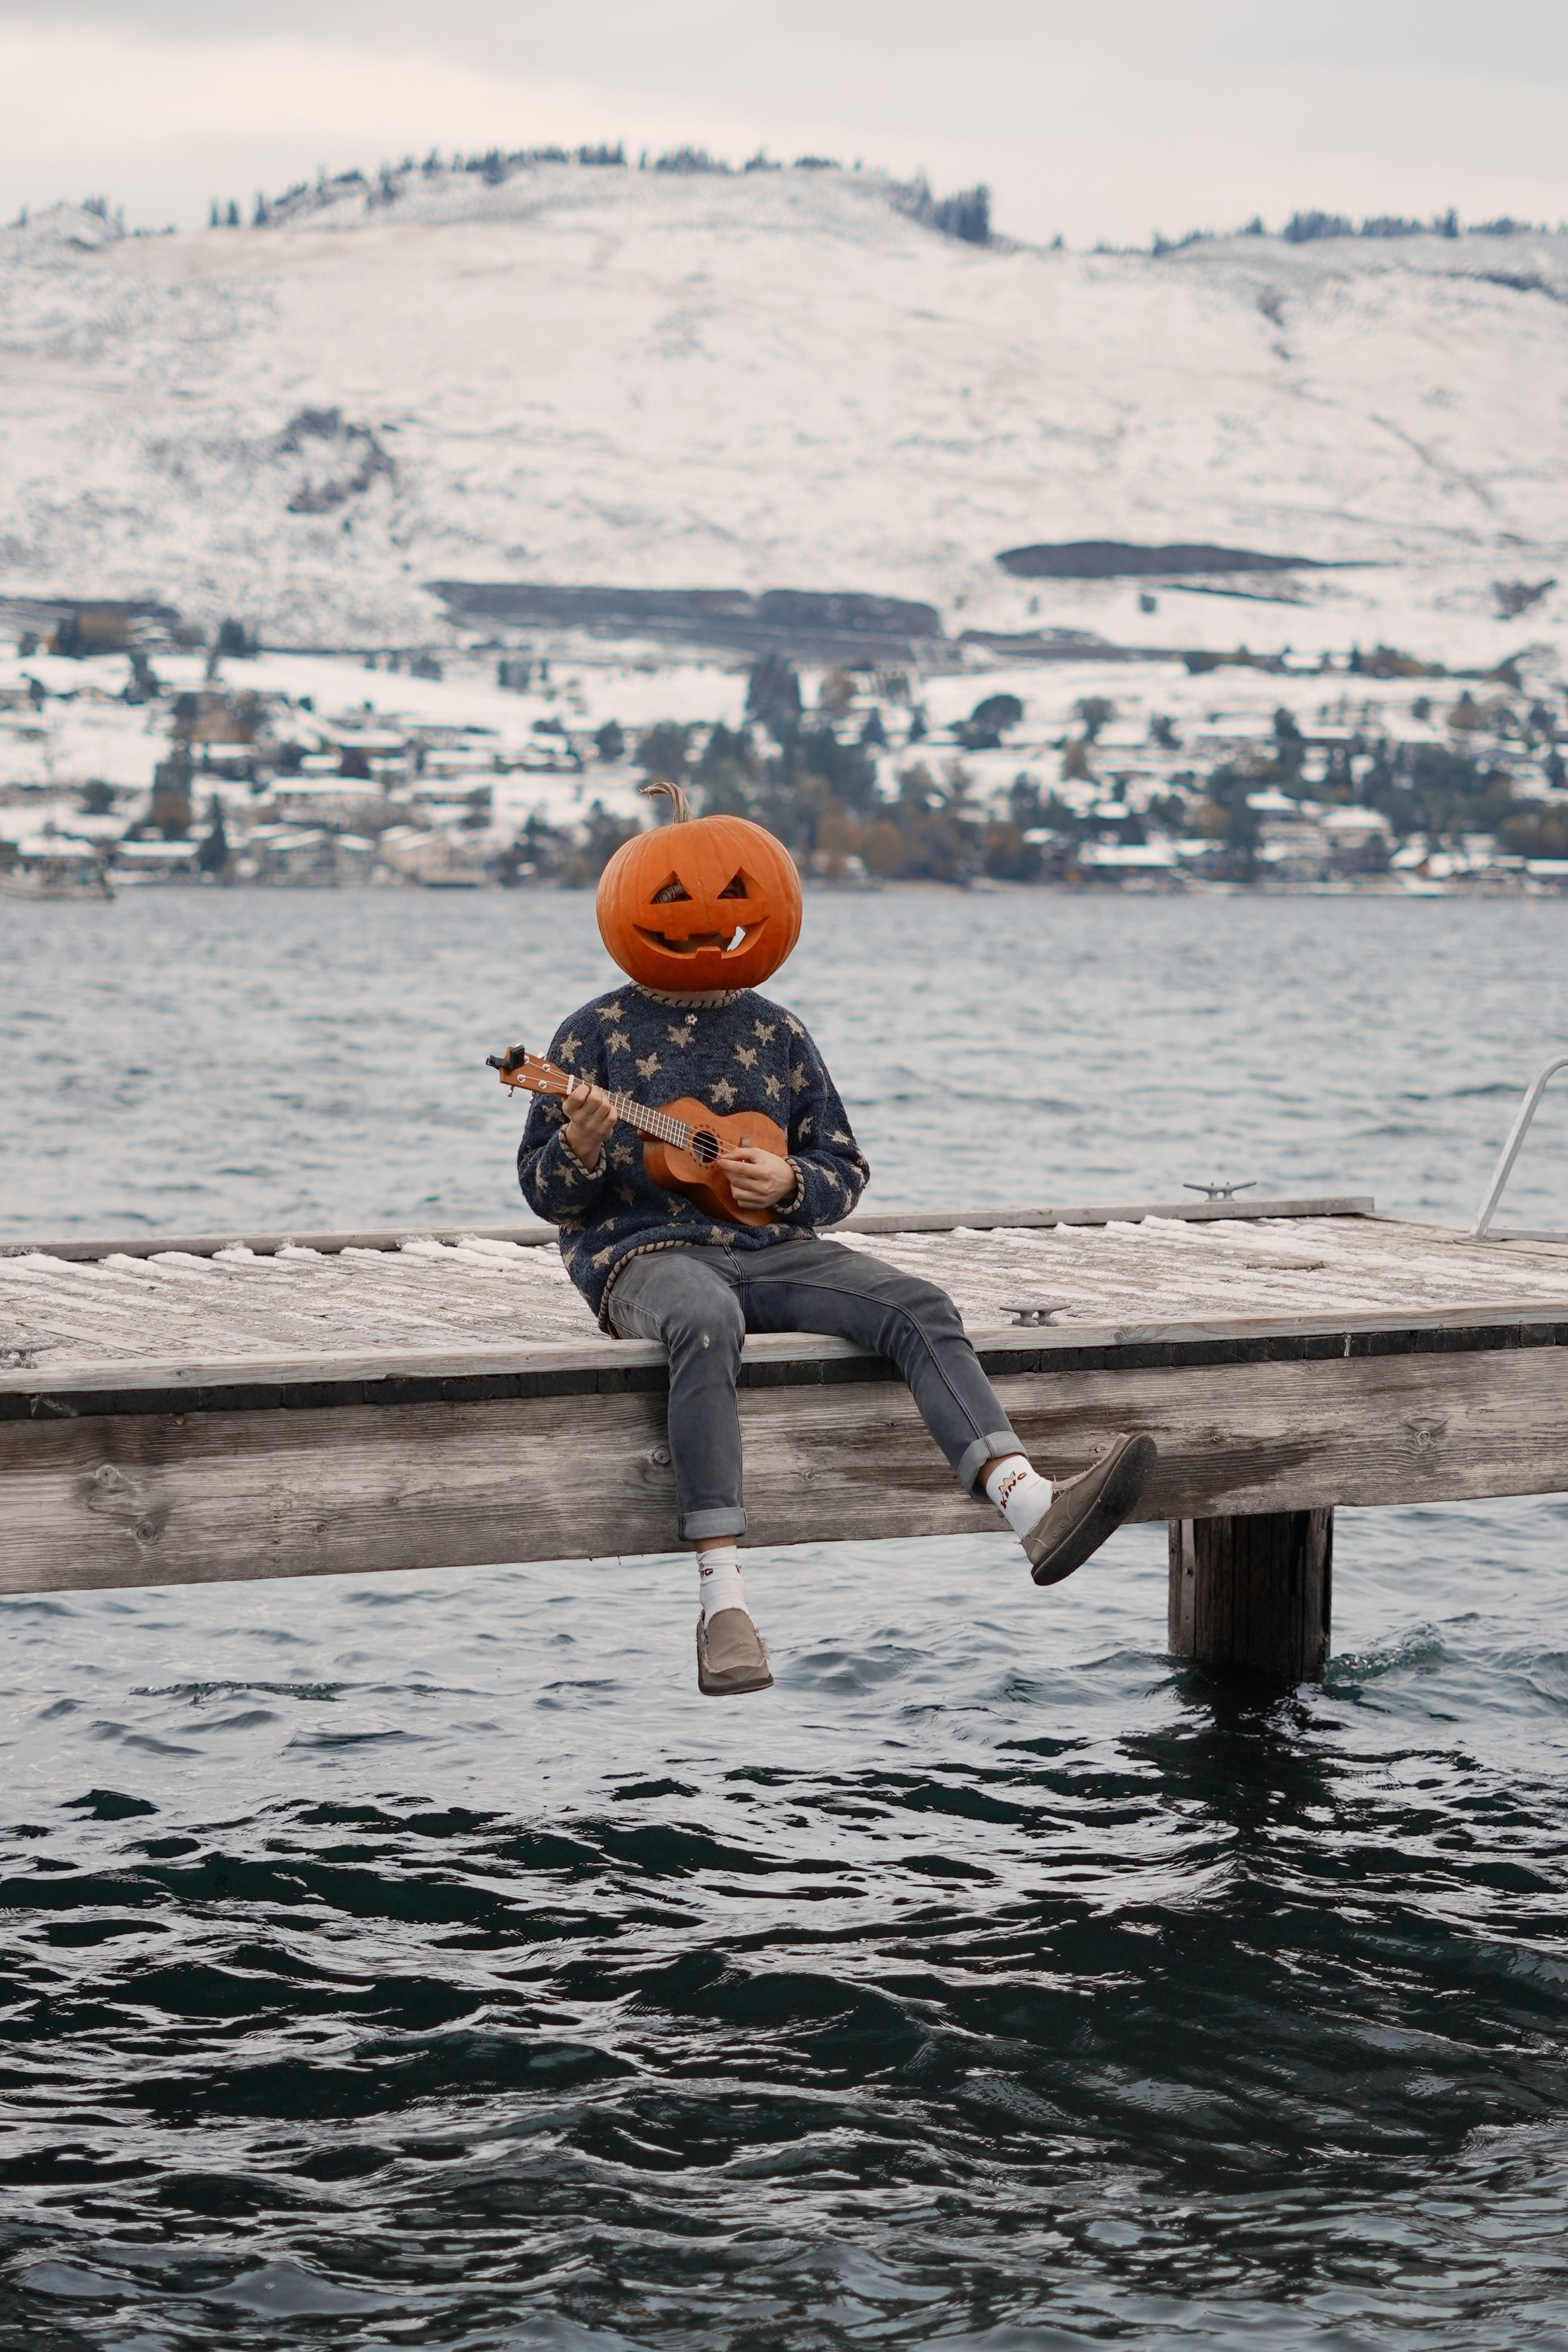 51906 download wallpaper Miscellanea, Miscellaneous, Human, Person, Pumpkin, Ukulele, Halloween, Funny screensavers and pictures for free